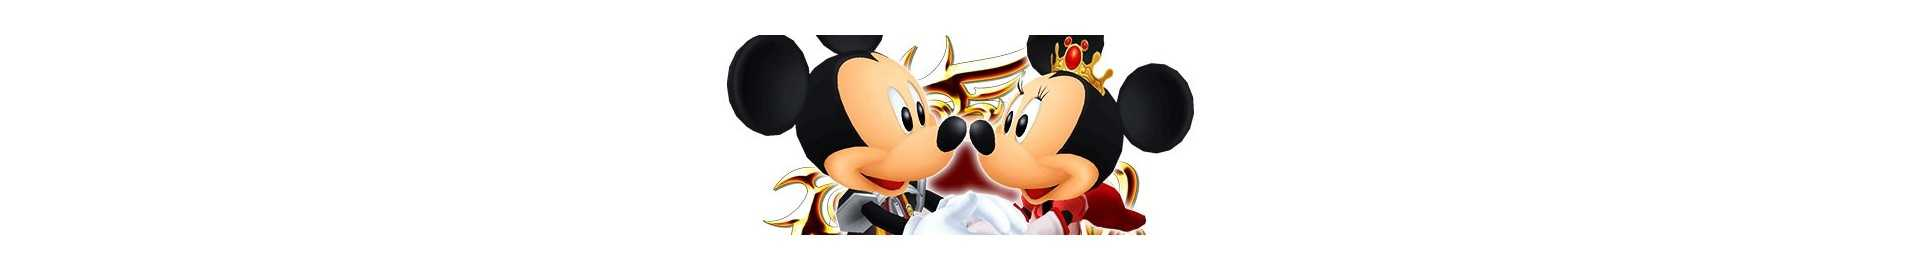 Mickey Mouse - Minnie